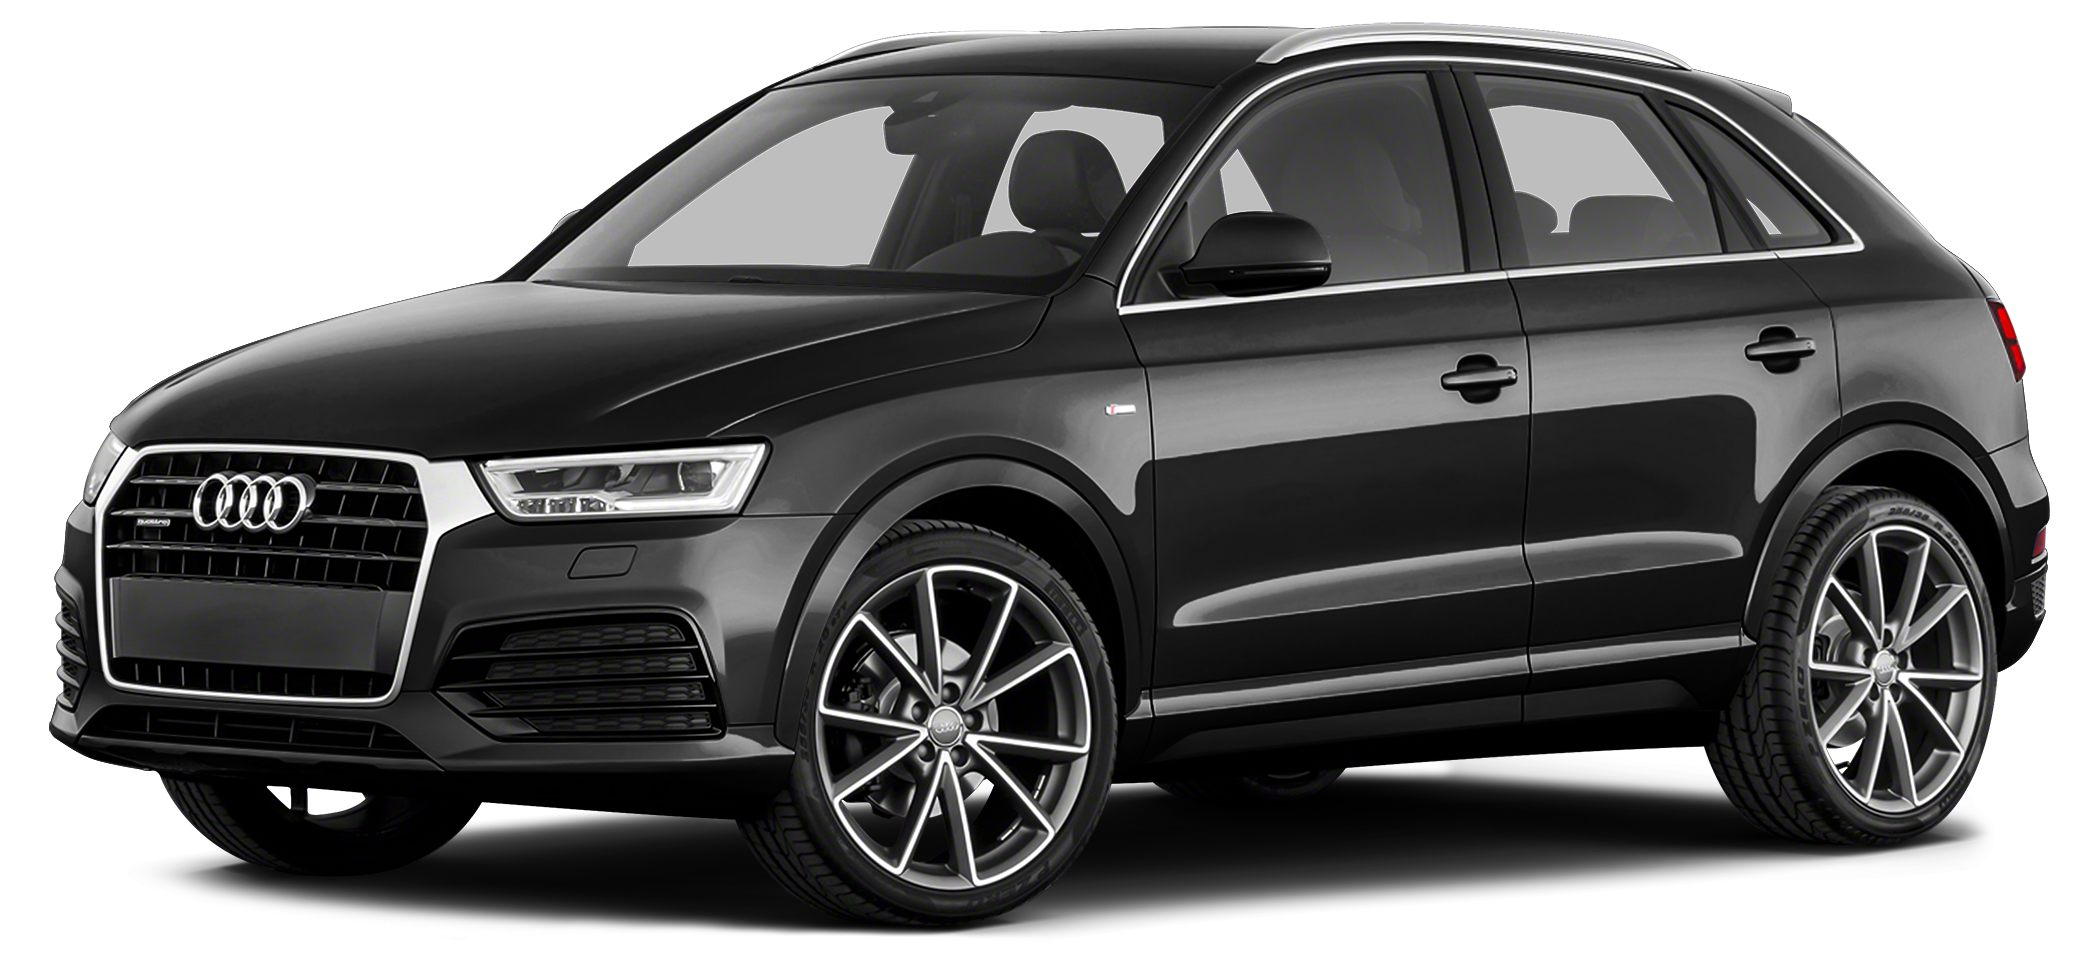 audi q3 noir d 39 occasion recherche de voiture d 39 occasion le parking. Black Bedroom Furniture Sets. Home Design Ideas